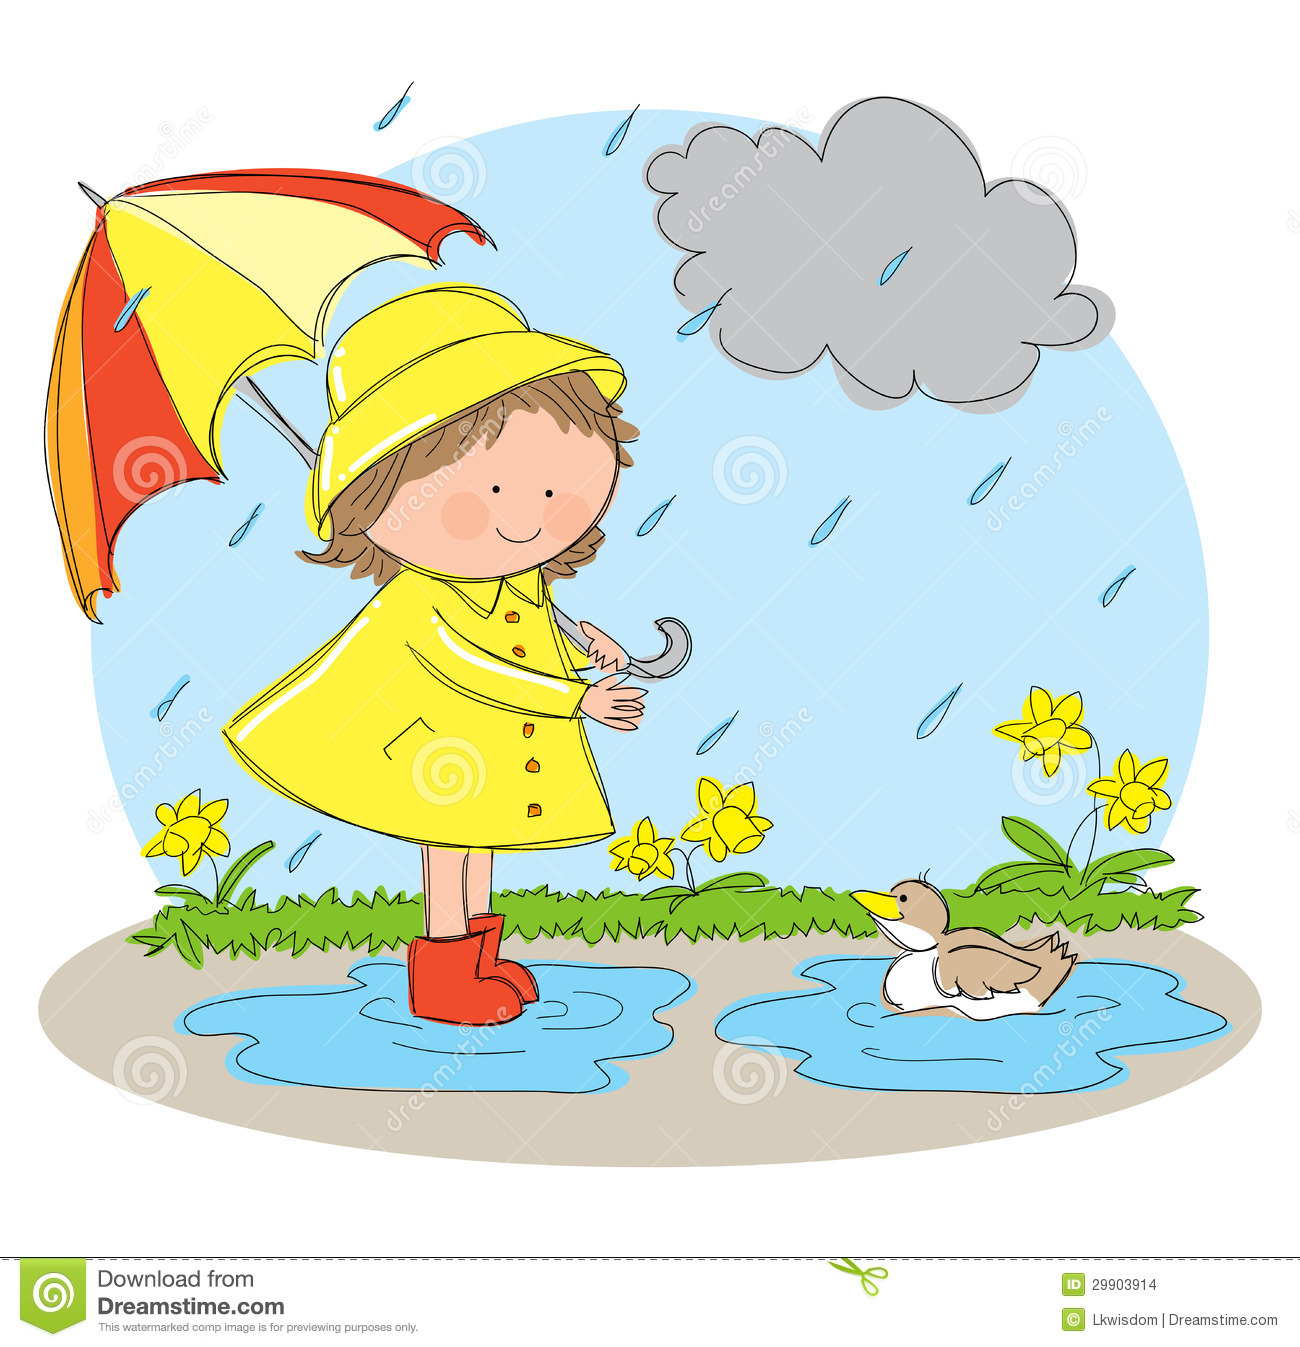 spring weather clipart - photo #4